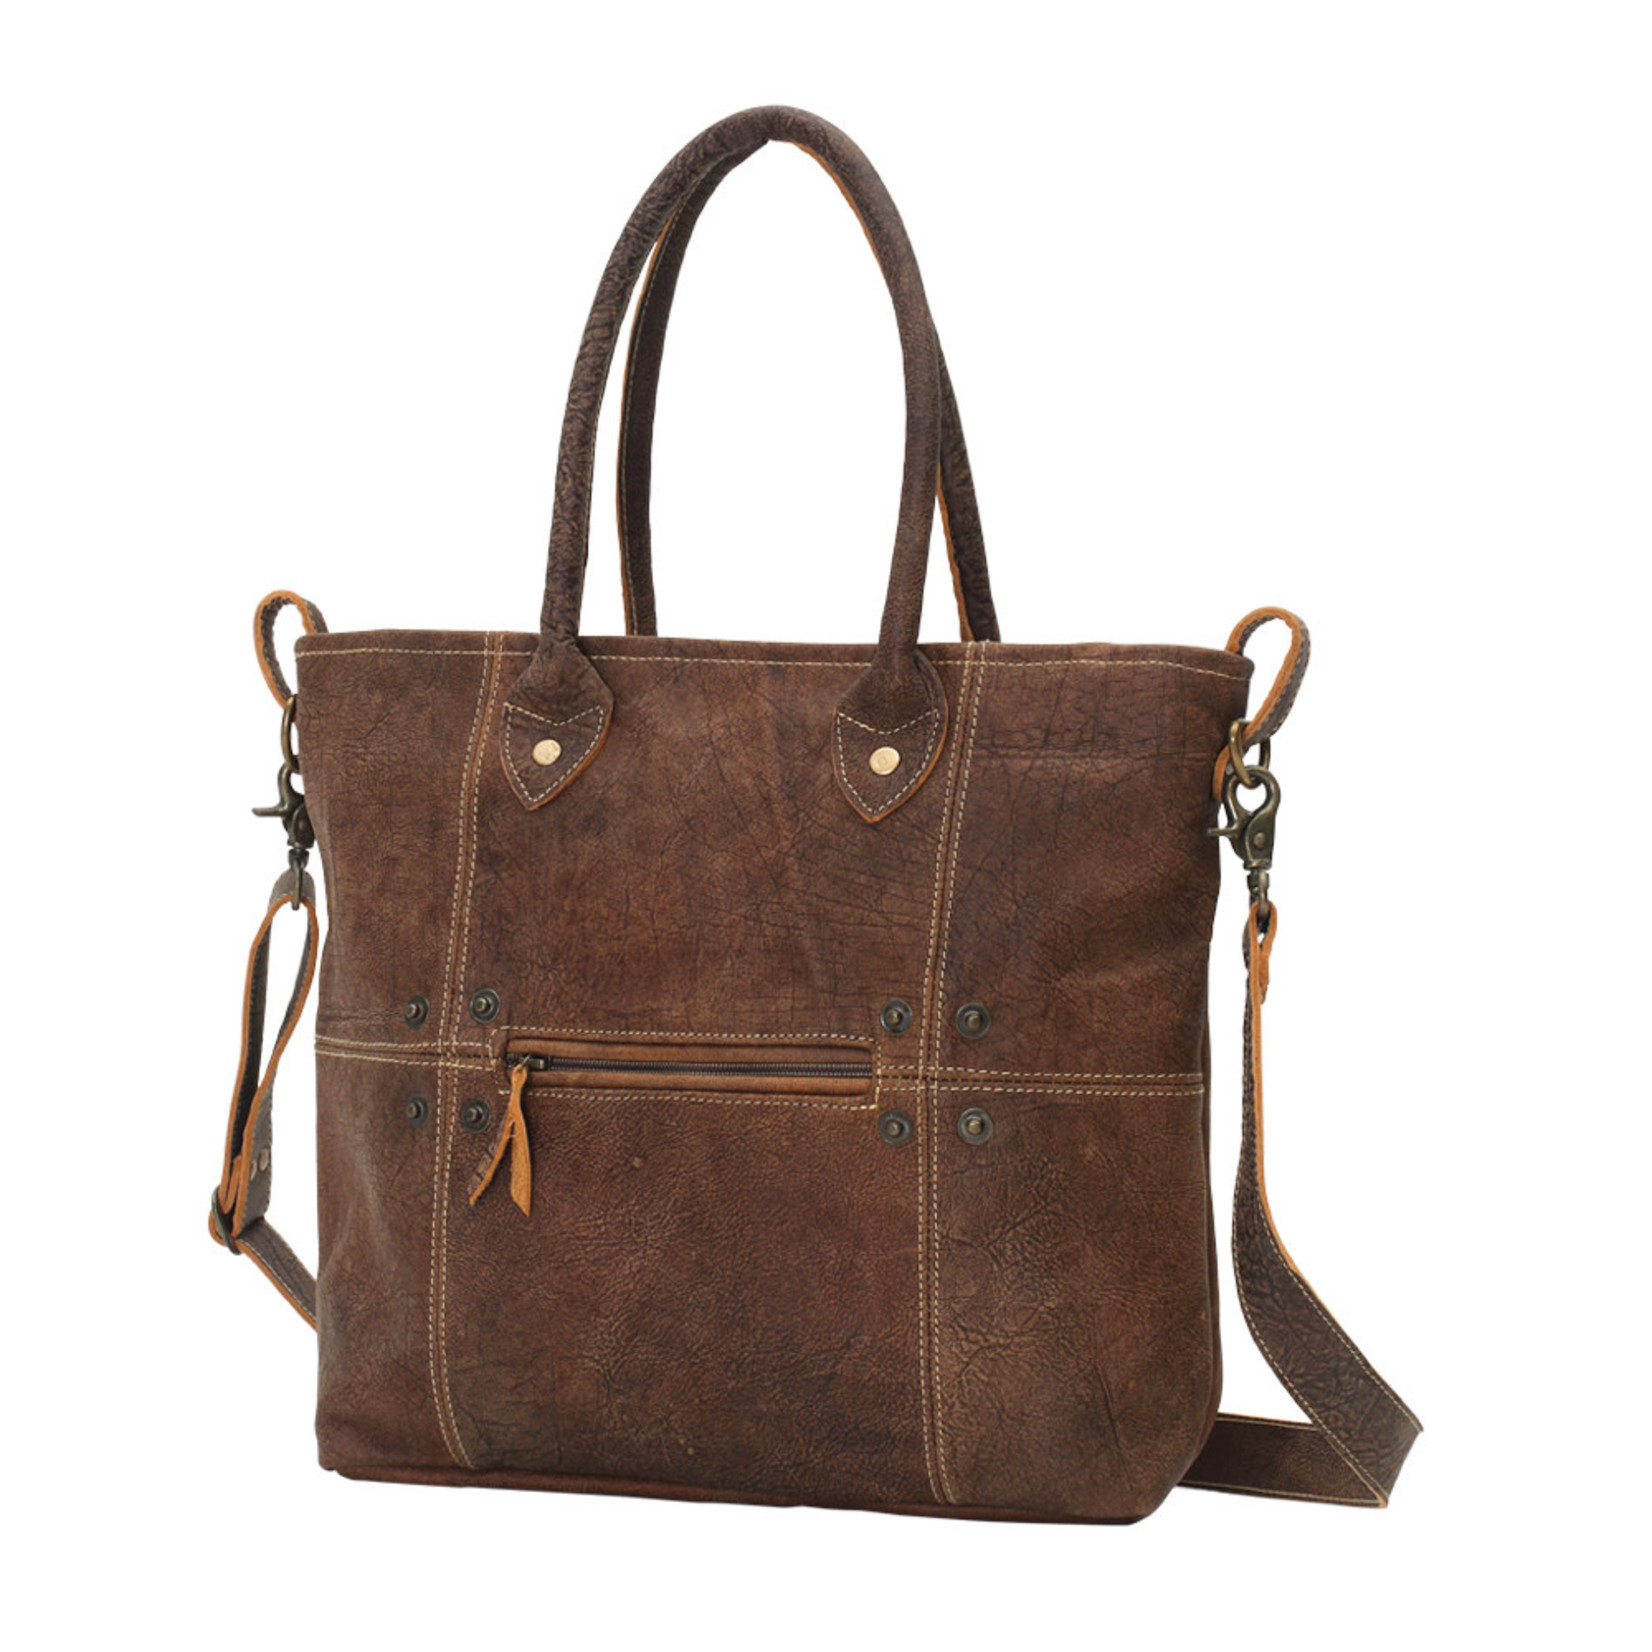 Myra Bags S-0727 Button & Stitches Leather Tote